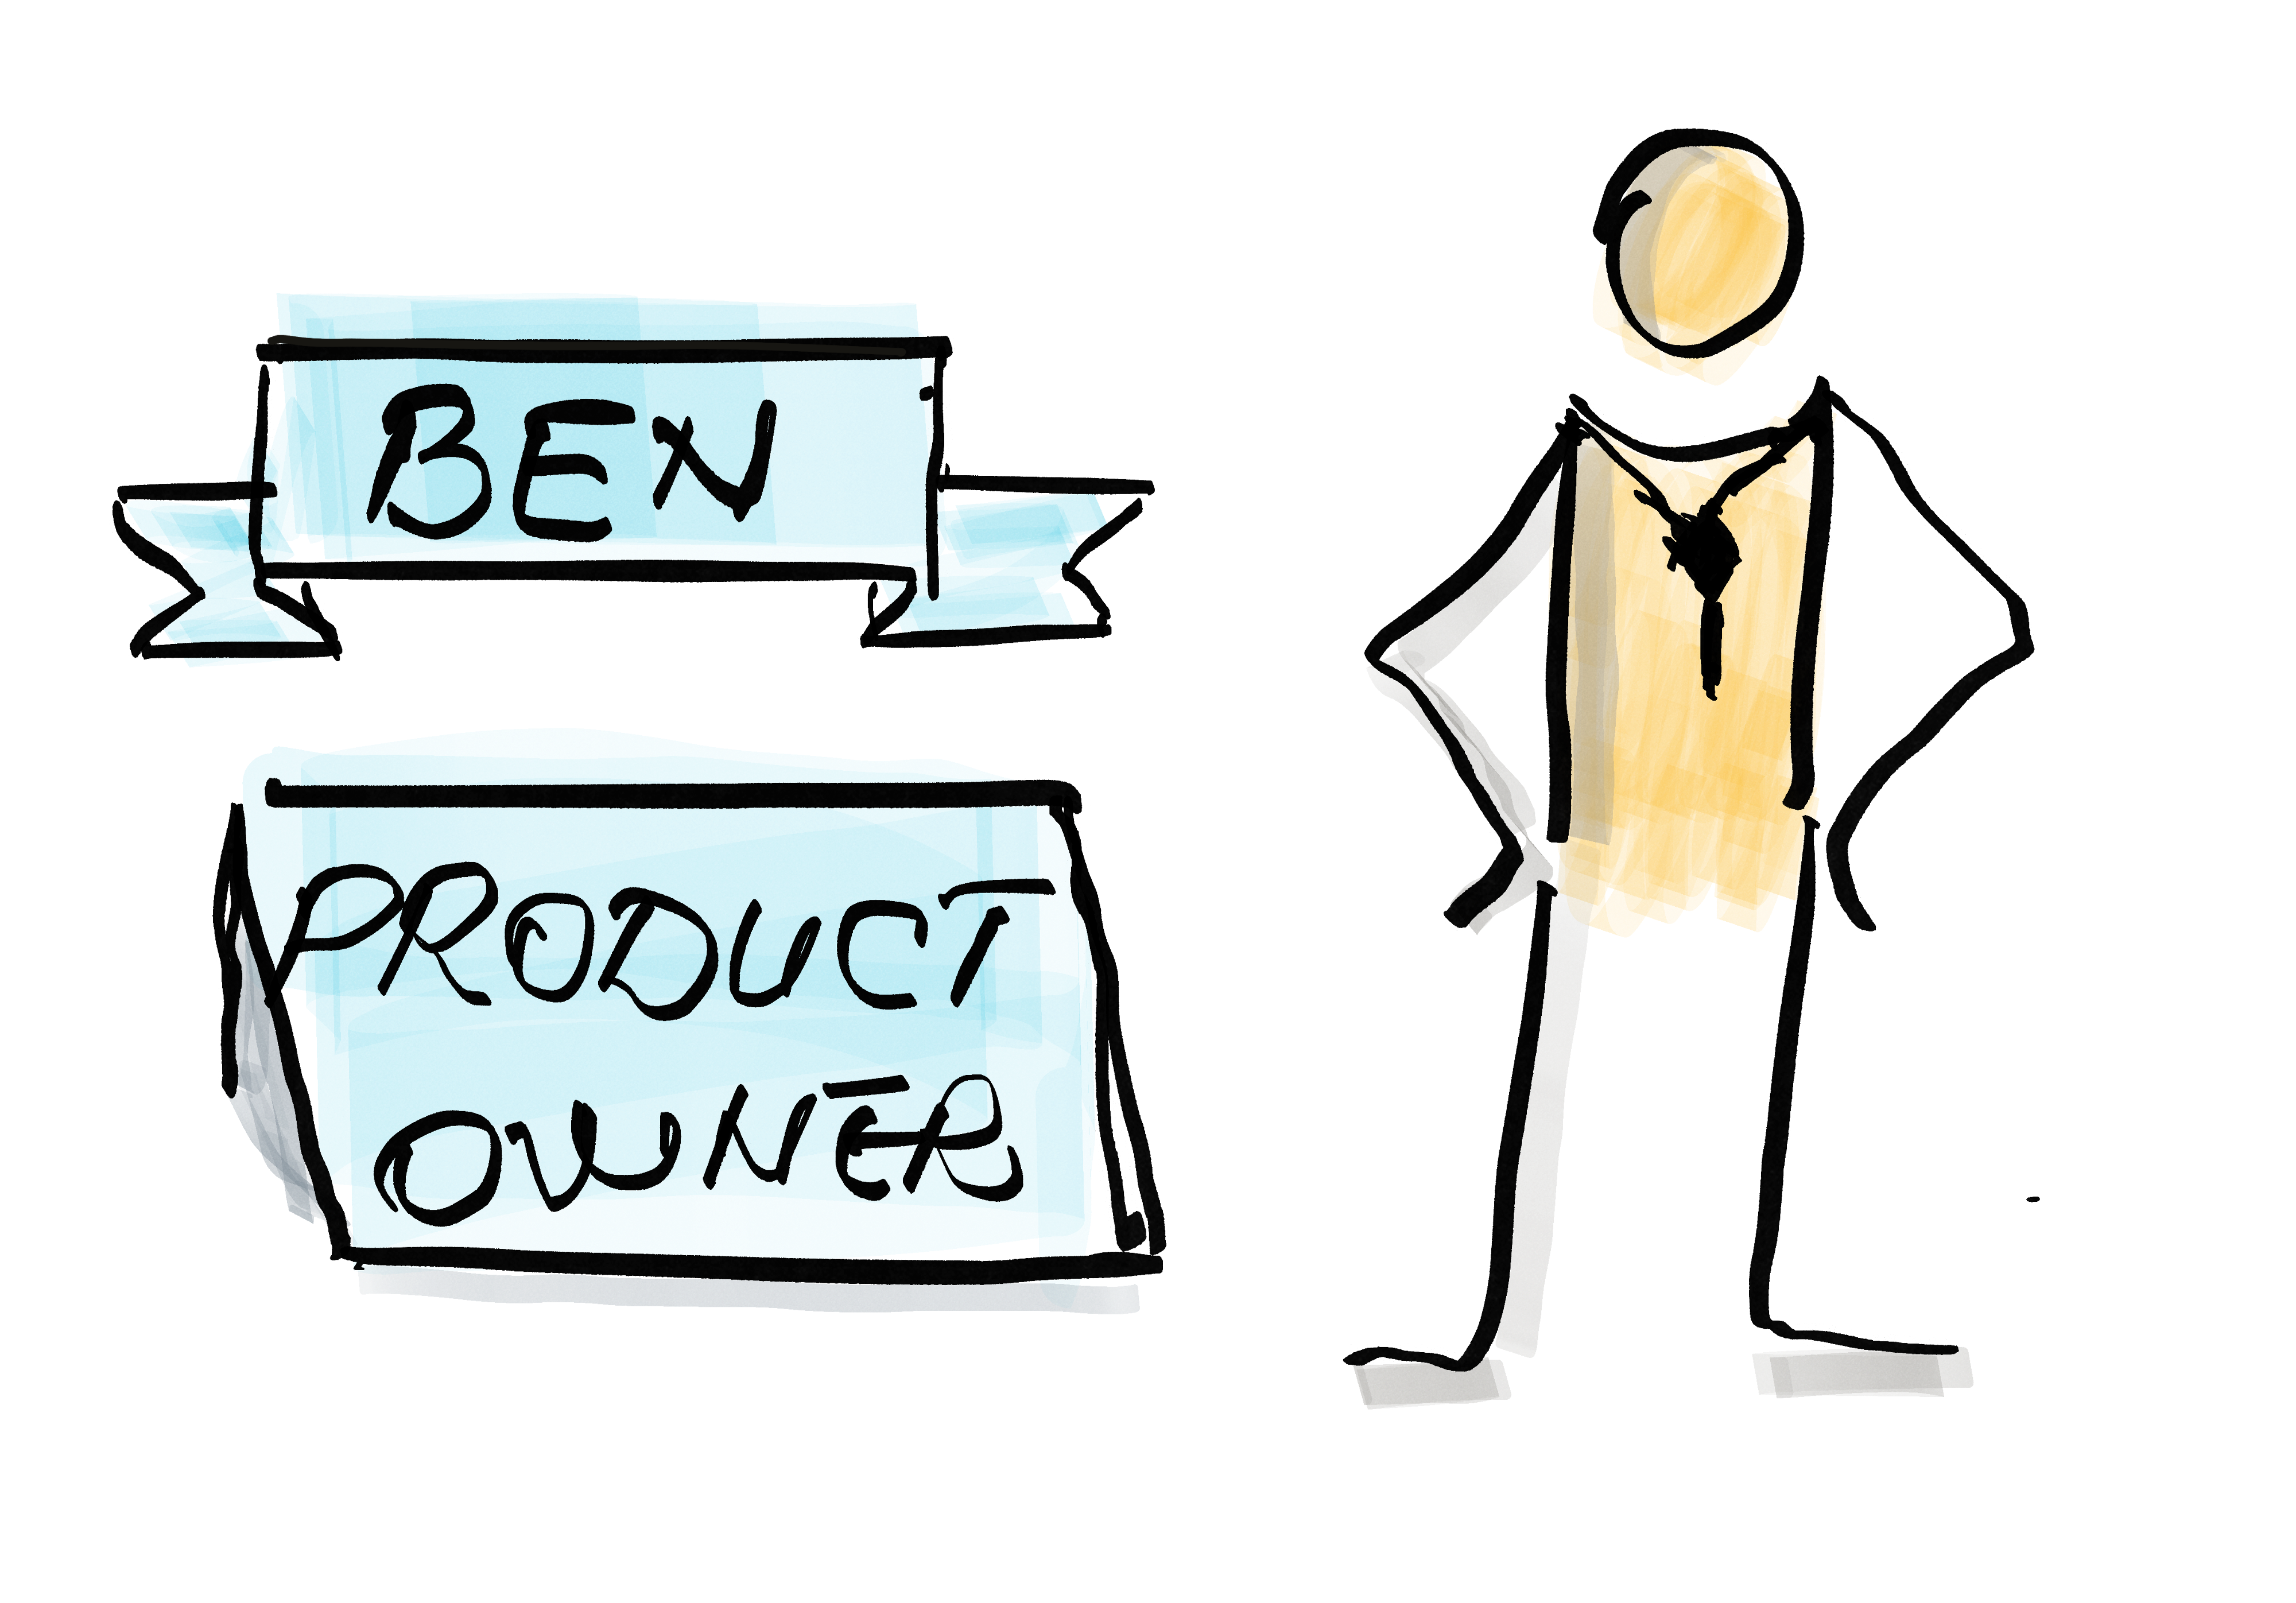 A product owner and his title and name — Ben